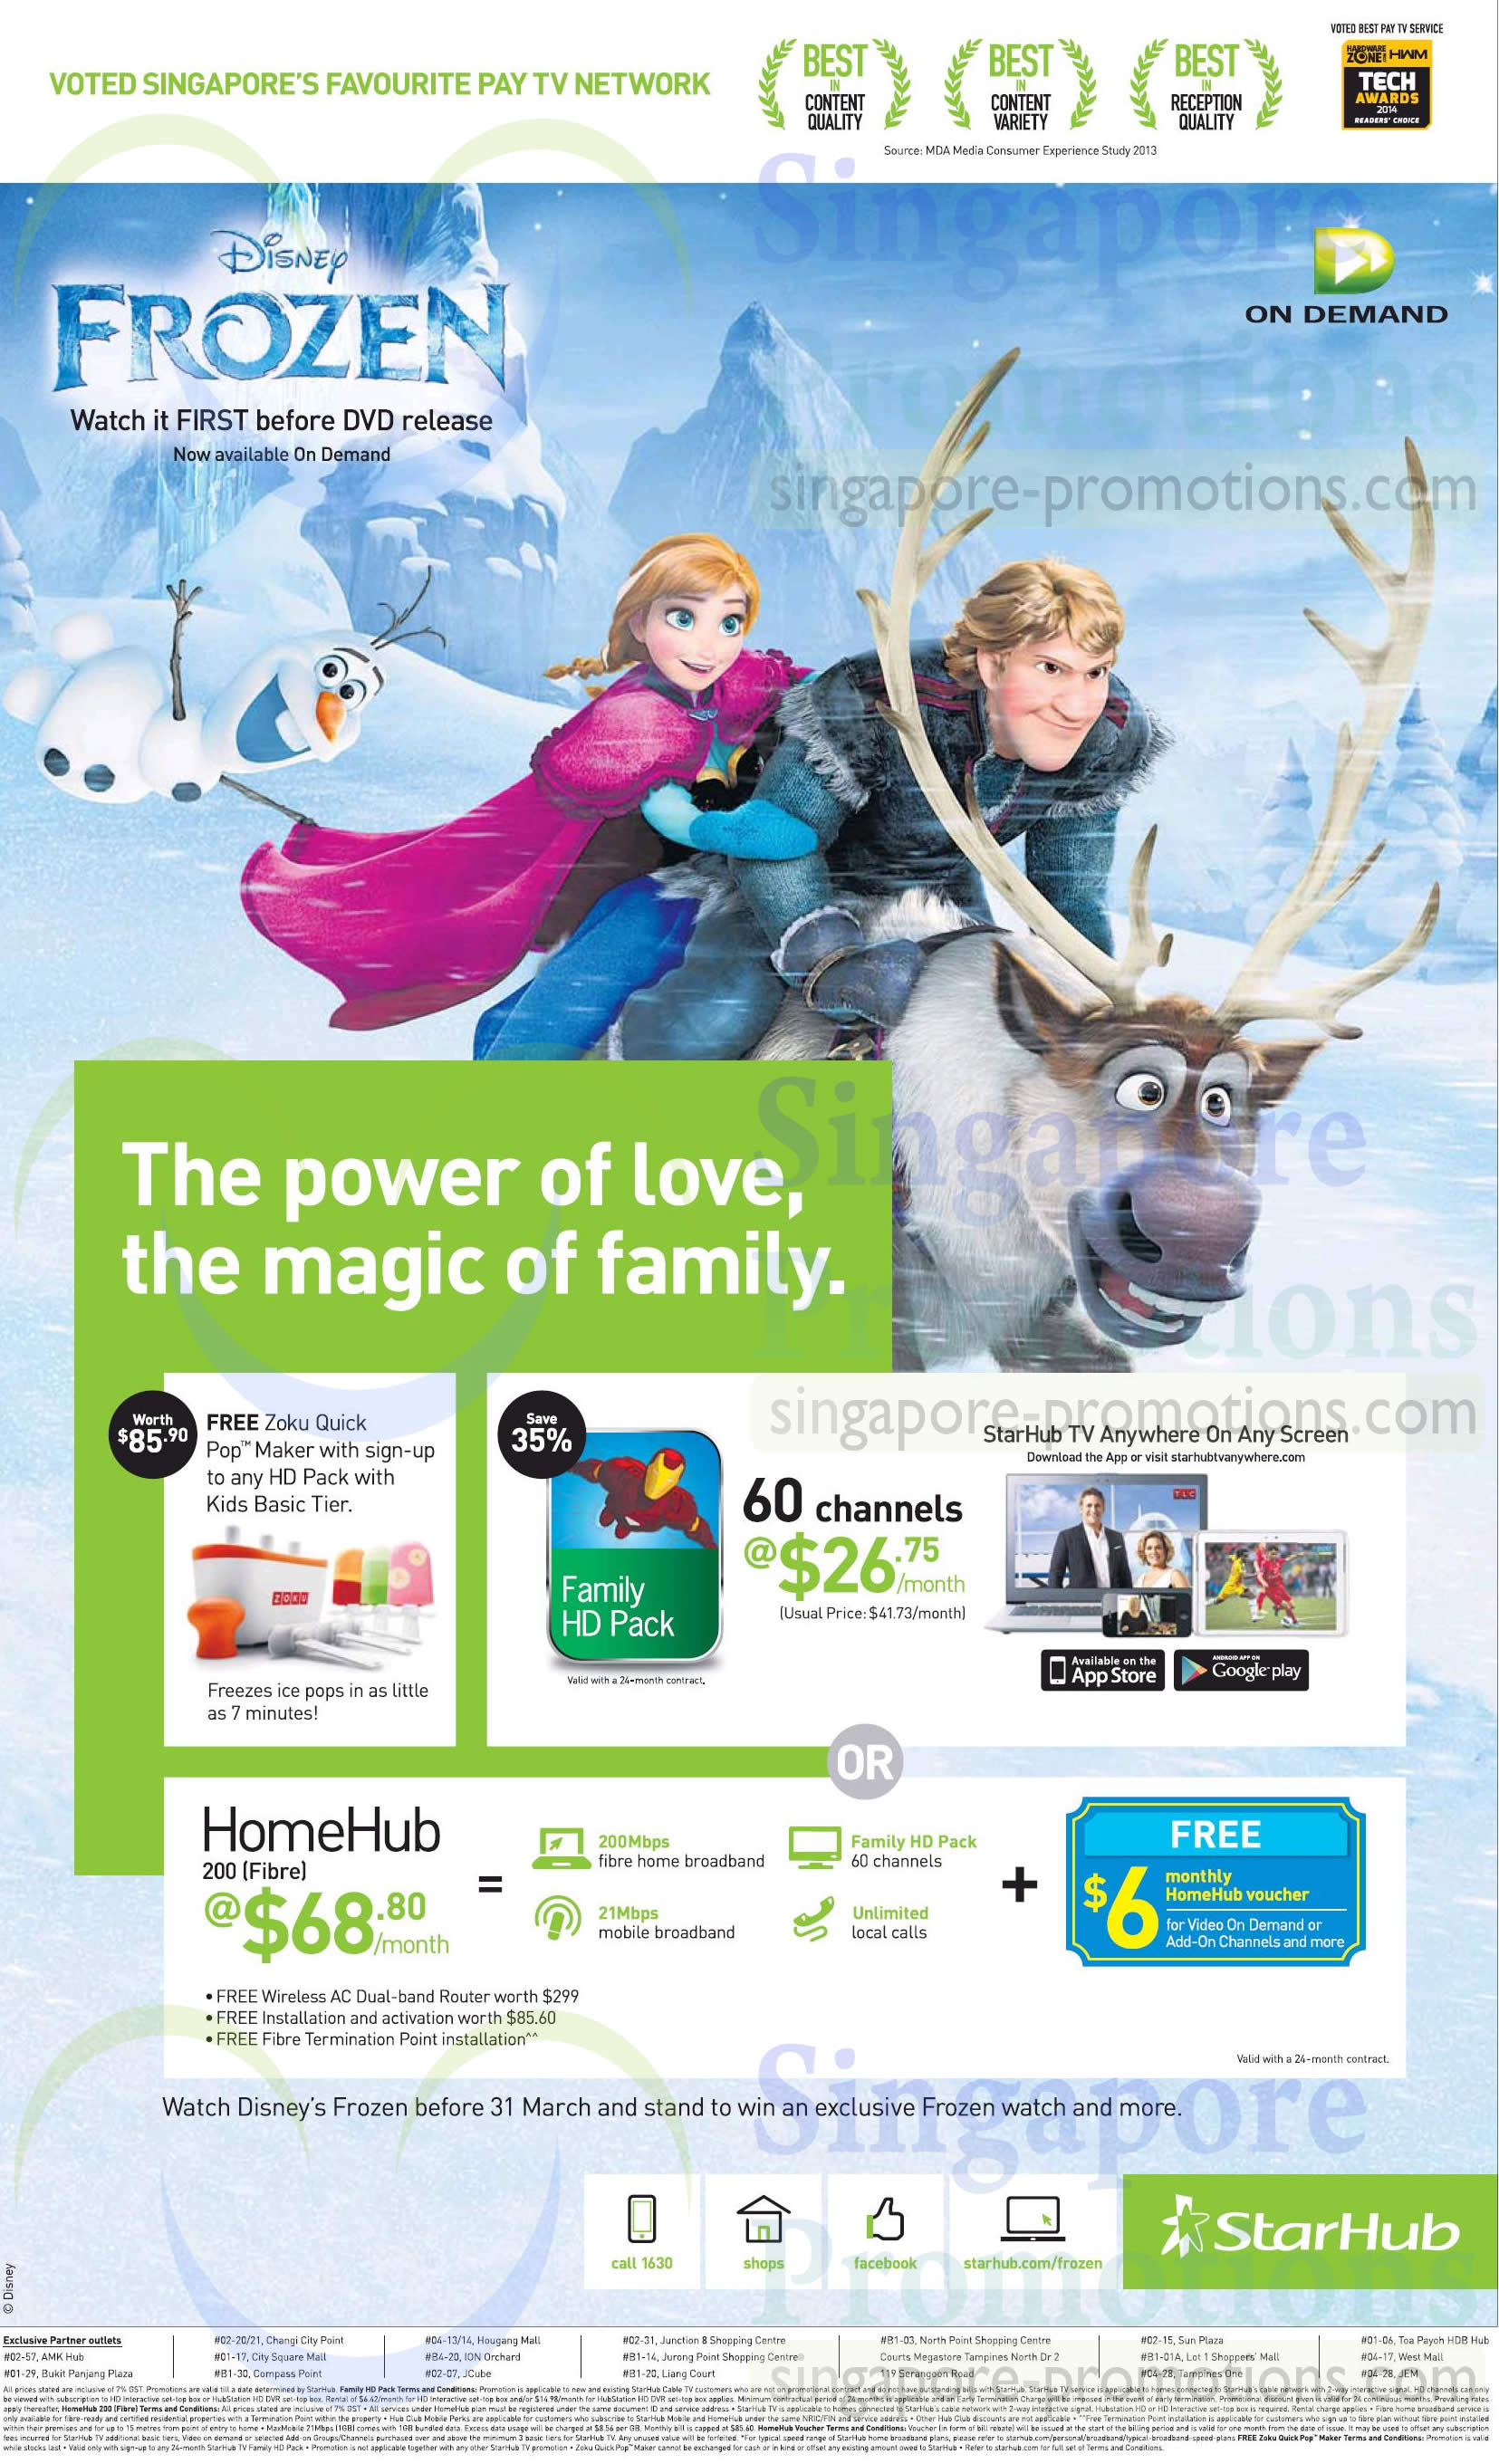 Cable TV Family HD Pack, HomeHub 68.80 200Mbps Fibre Broadband